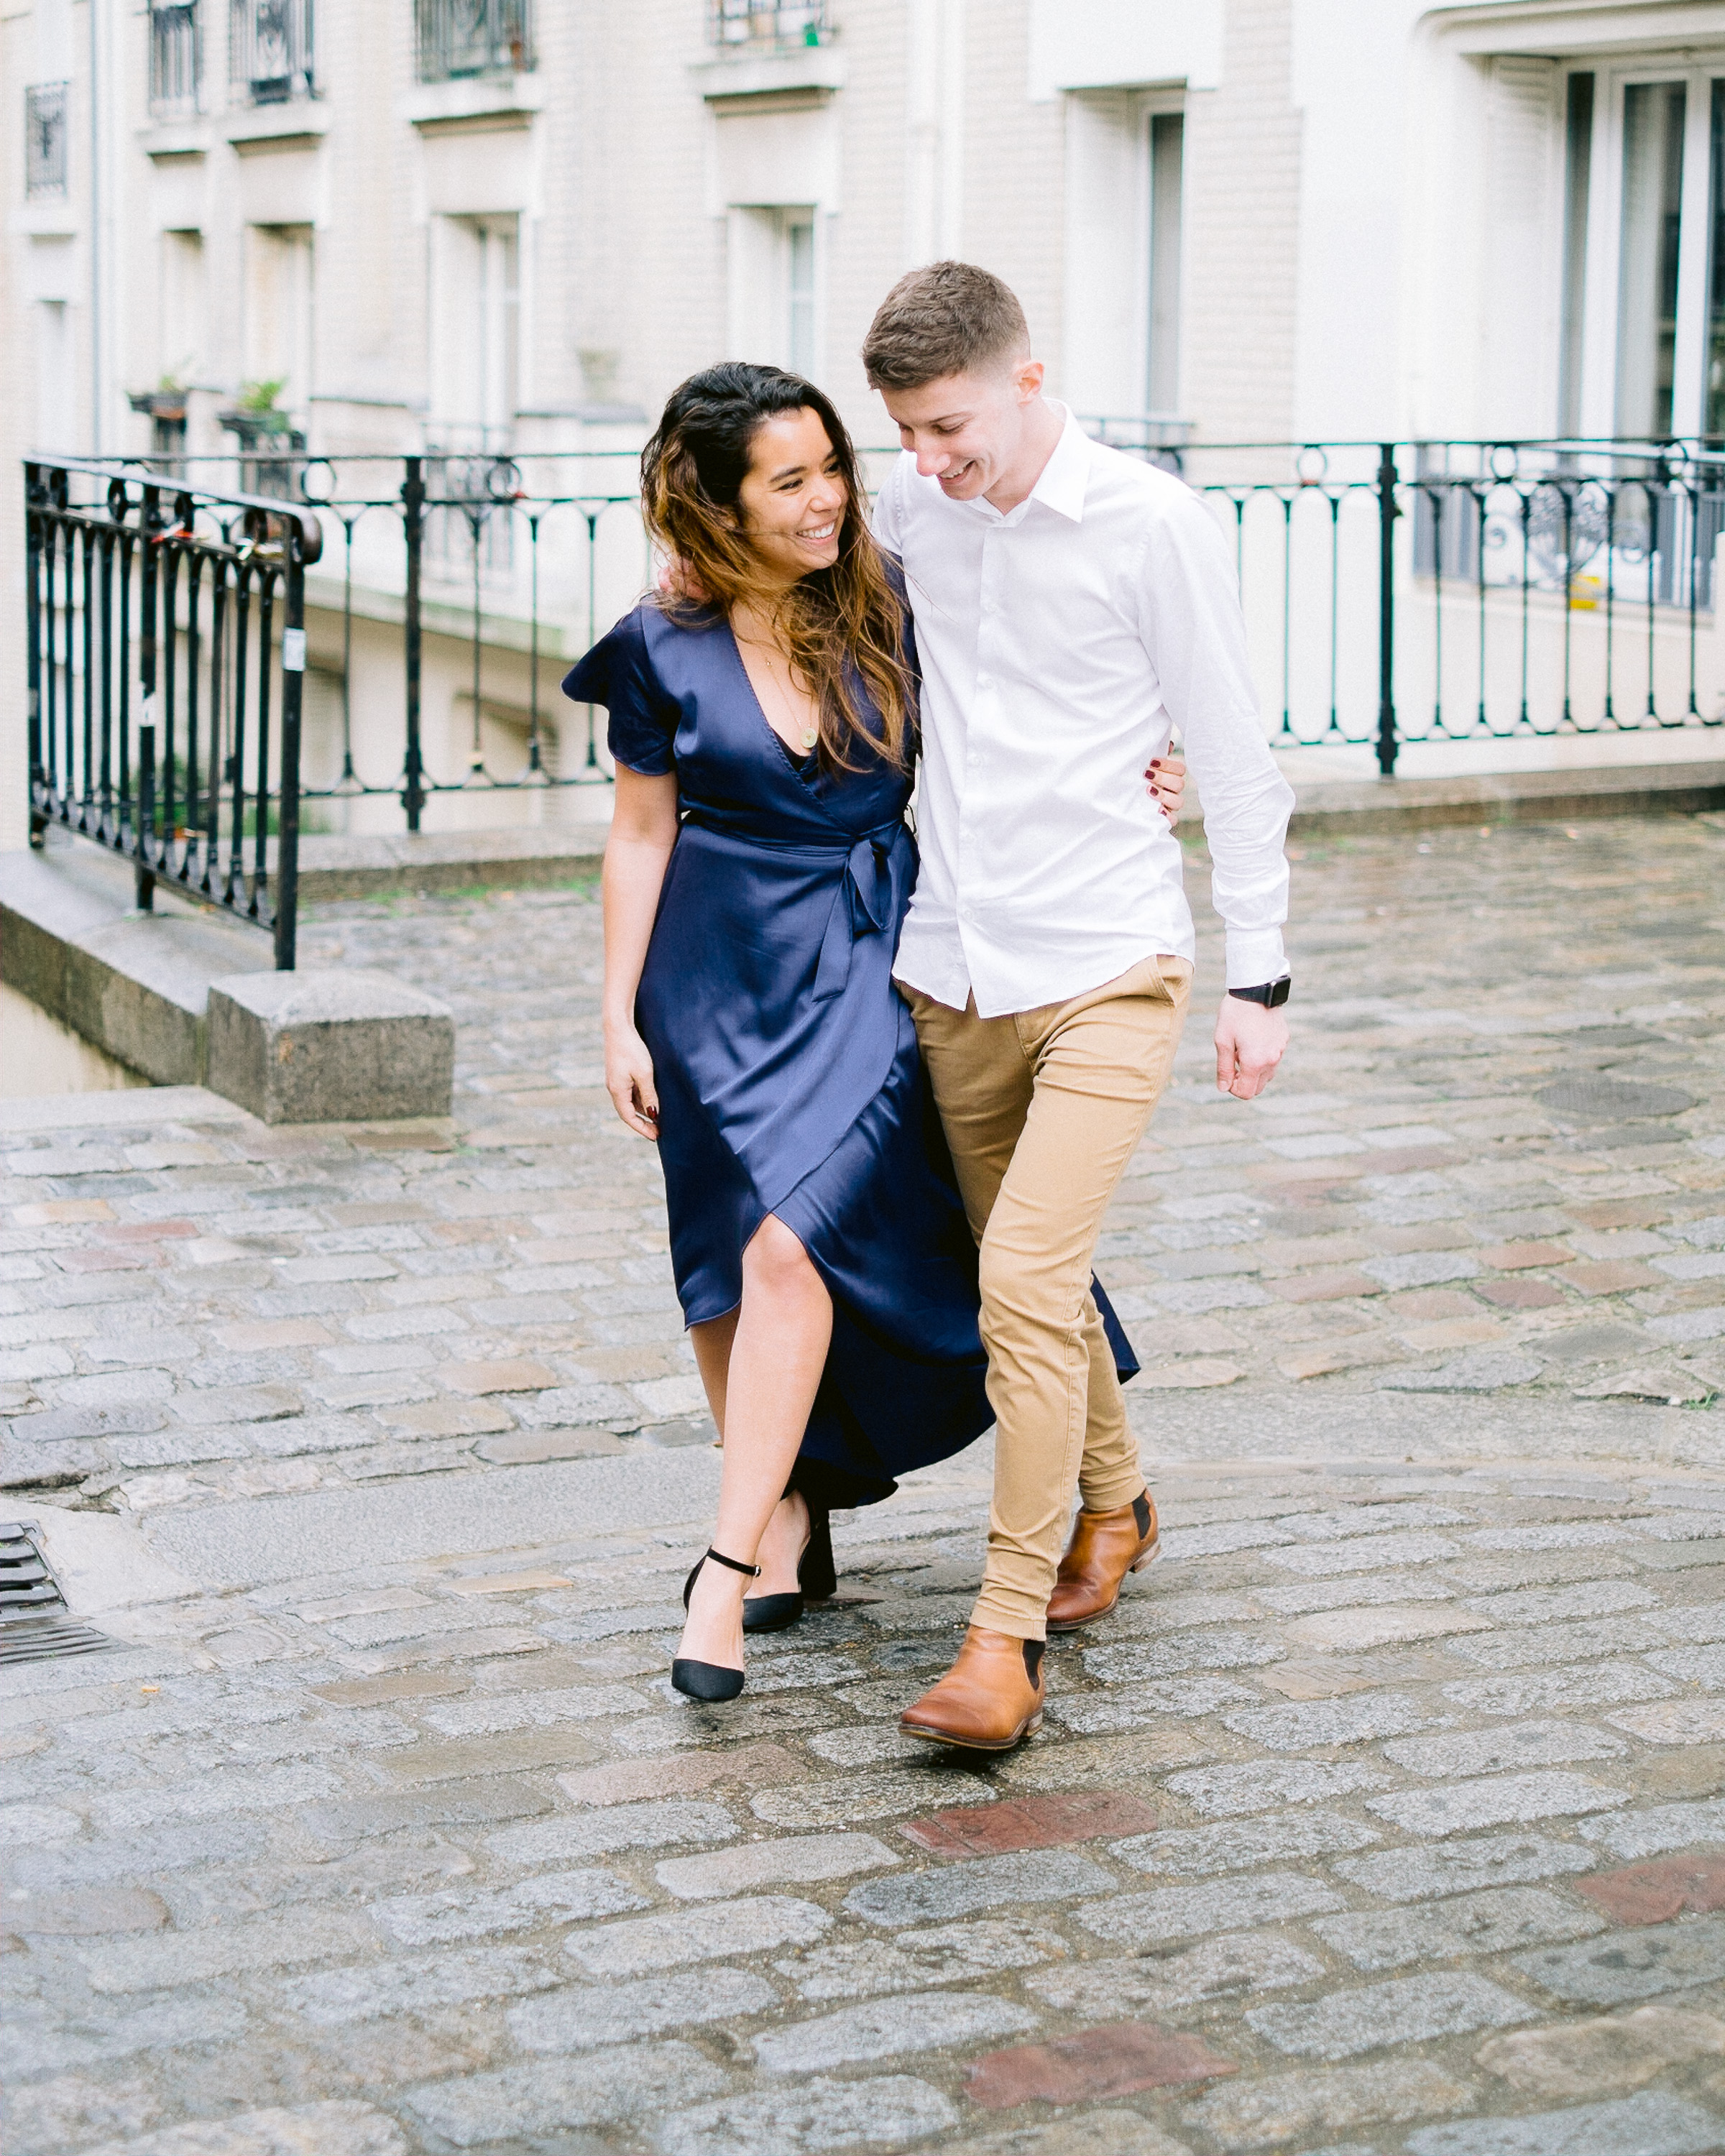 yannm_montmartrewedding-pariswedding-montmartreengagement